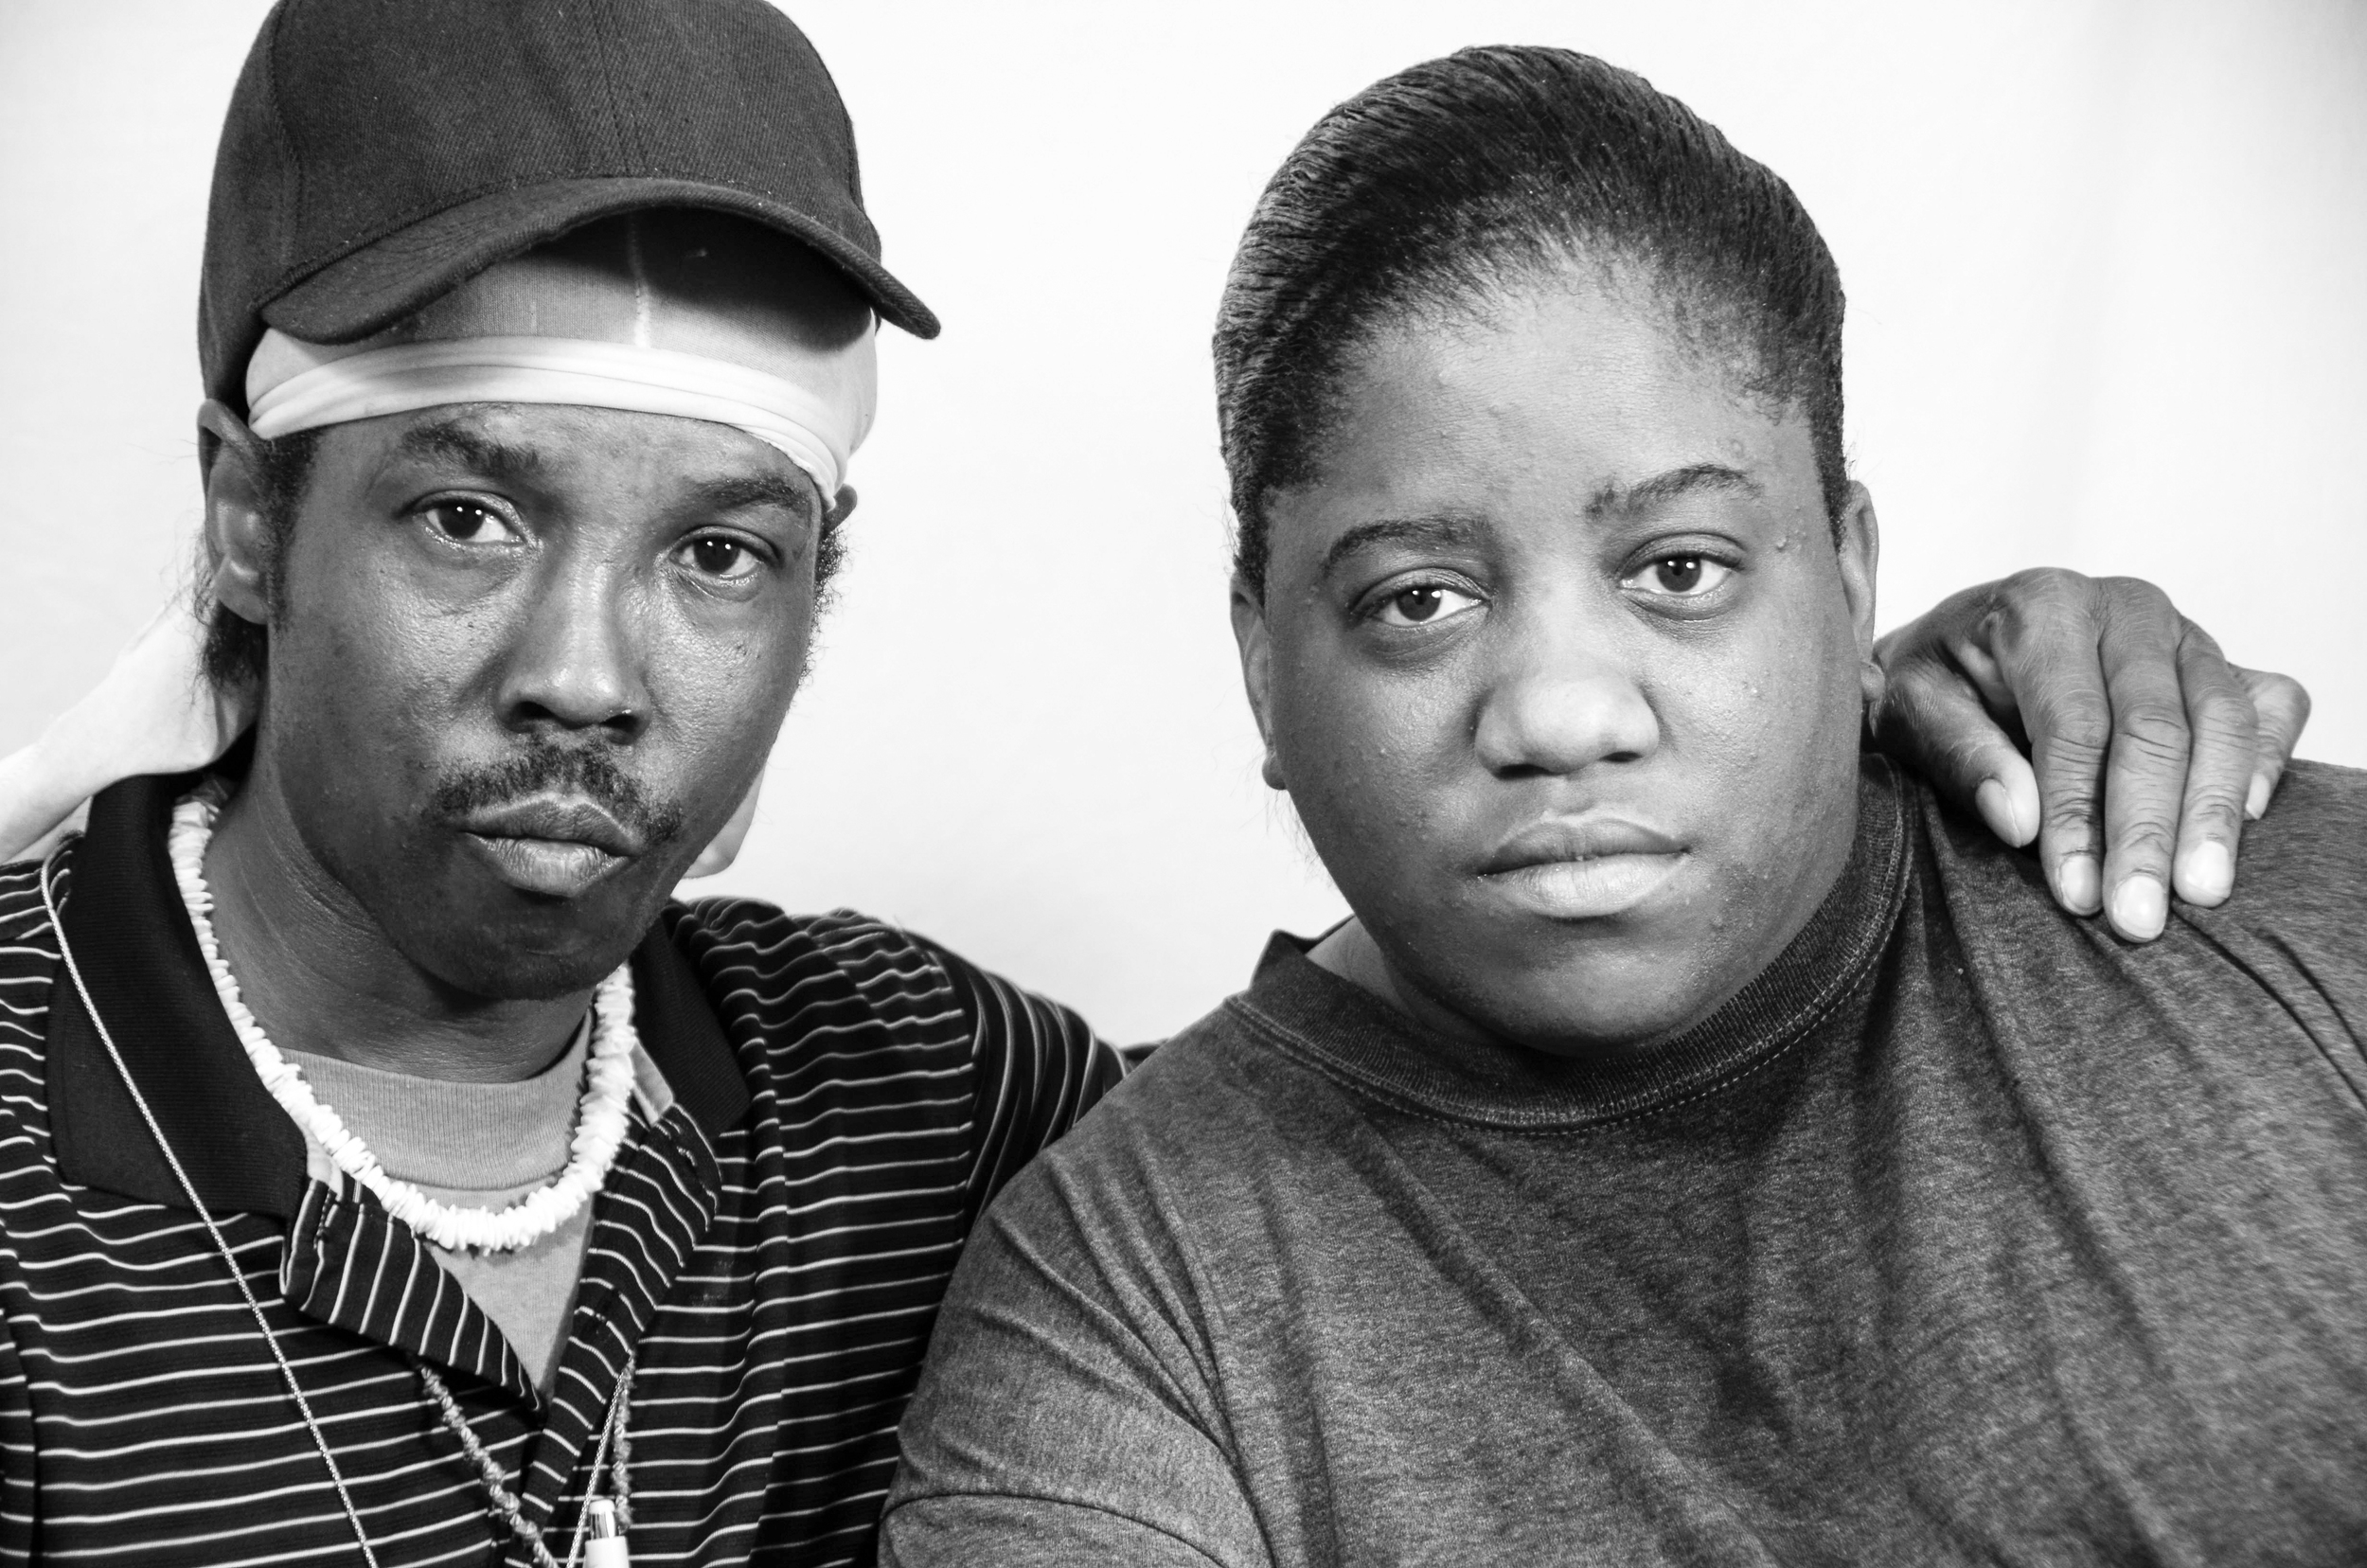 Randy Brooks, 52 and Antoinette Blunt, 30. This portrait was part of a Modesto Bee series on mental illness and access to care.